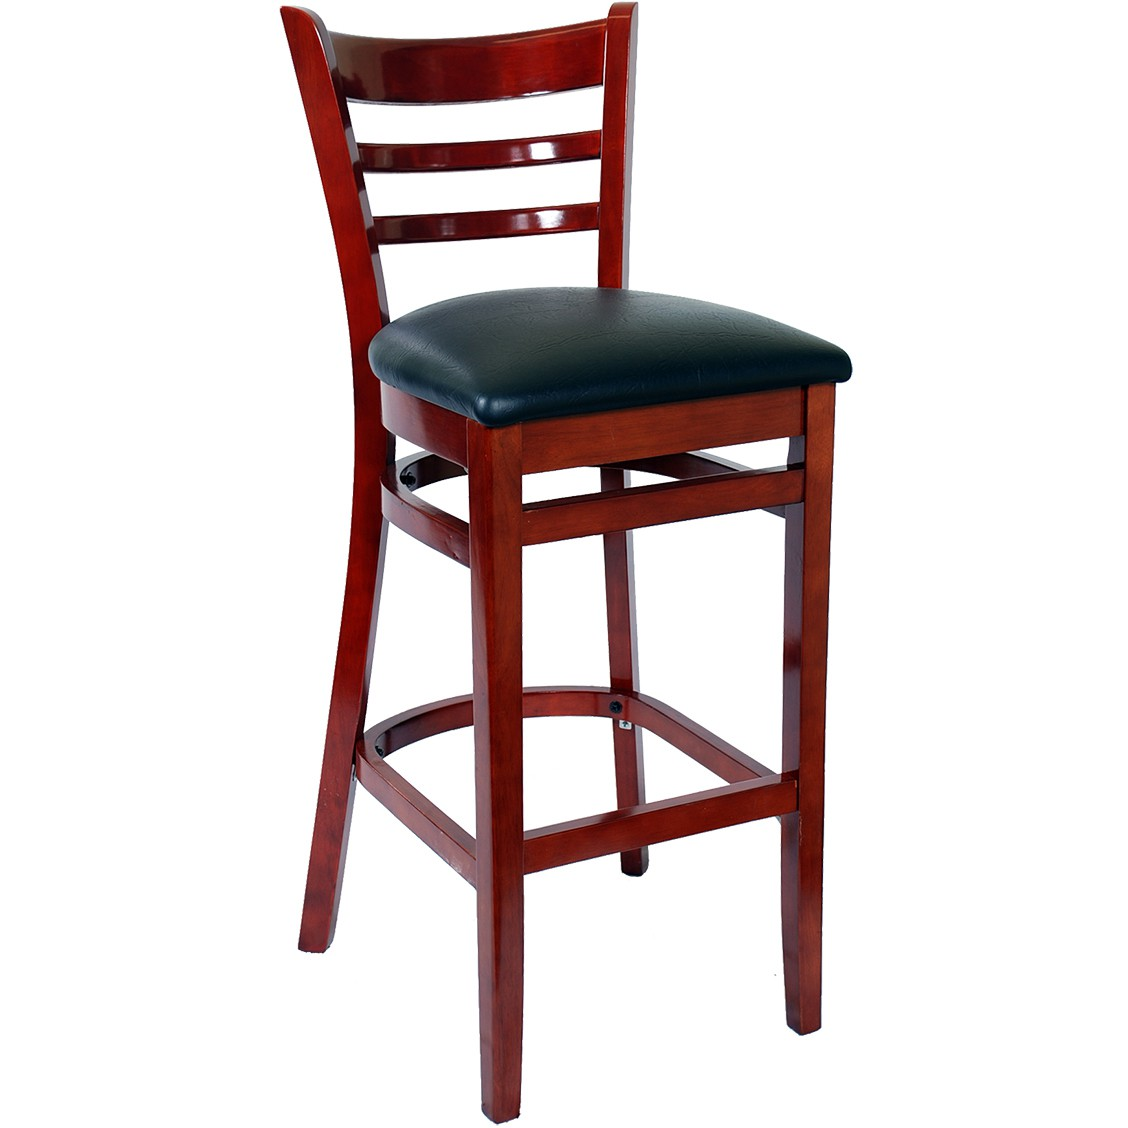 nice chair stool ostrich deluxe 3n1 beach ladder back wood bar stools mahogany finish with a black vinyl seat